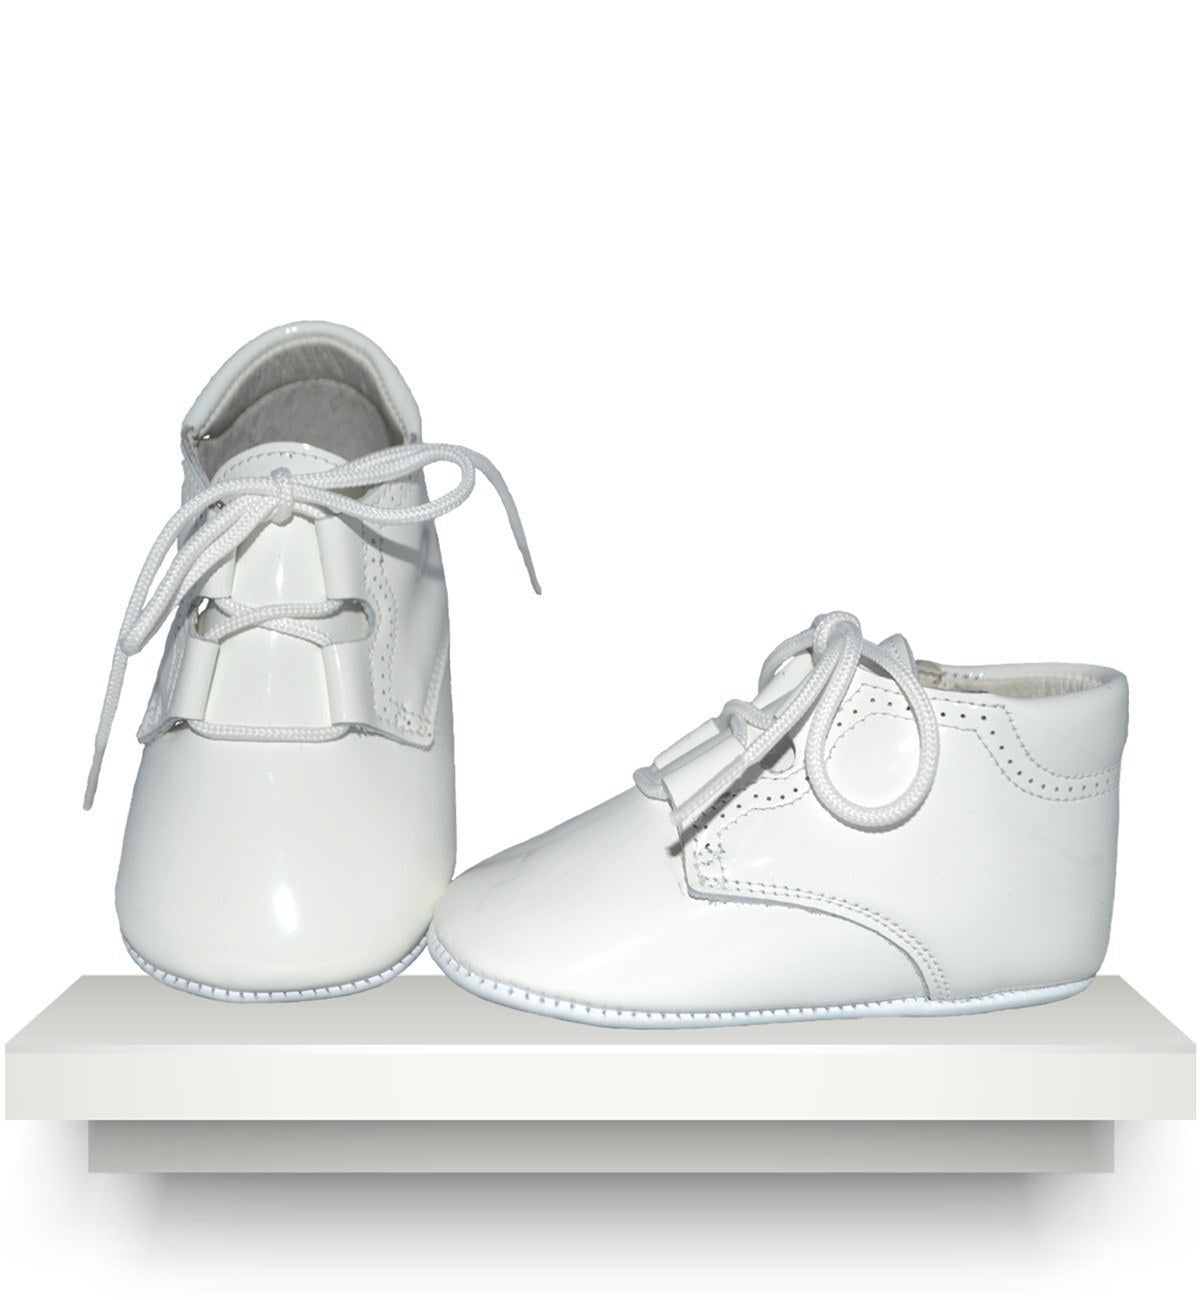 Spanish baby clothes | baby Shoes | White patent leather boots |babymaC  - 1